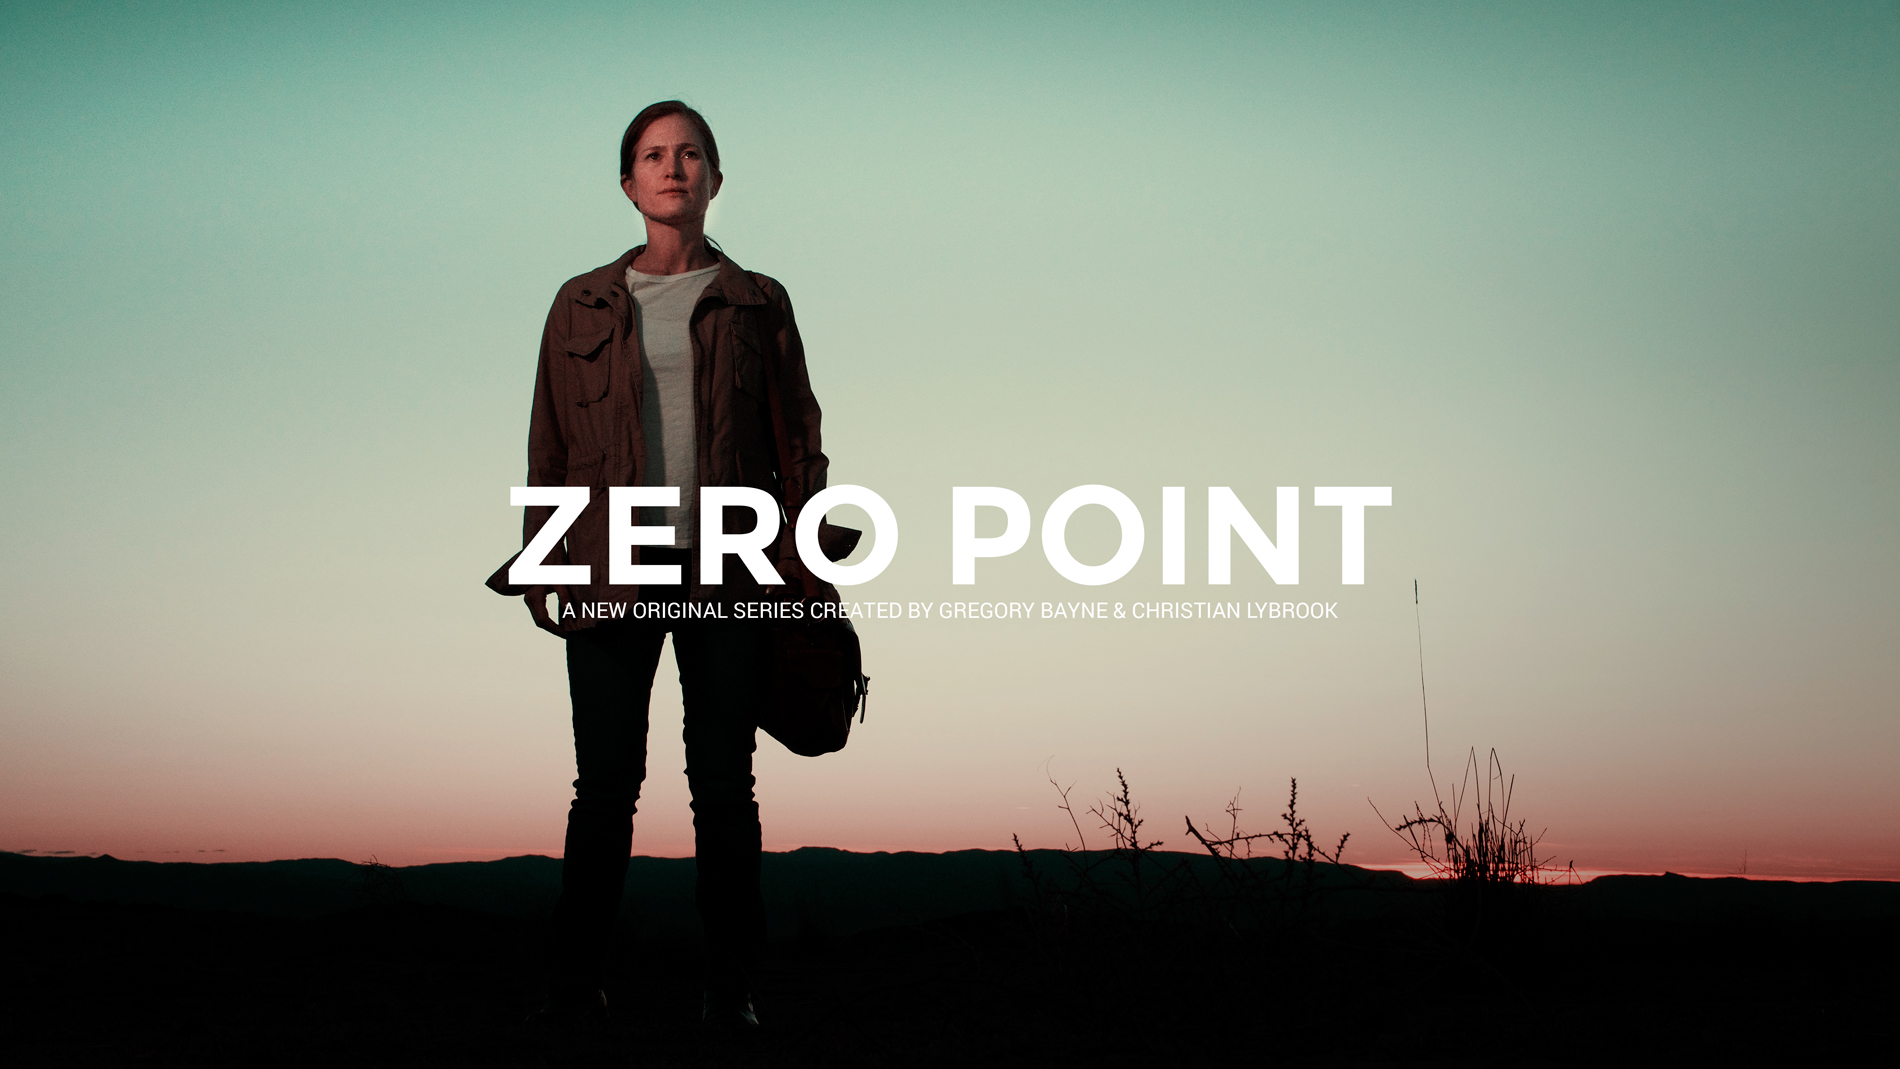 ZERO POINT - A 1-hour serialized pre-apocalyptic thriller.Consumed by the strange and abrupt death of her son, Dr. Alex Embry investigates a mysterious disease that she alone believes will bring about human colony collapse starting with the youngest generation first. Co-written/co-created with Gregory Bayne. COMPS: The Killing, X-FilesSELECT ACCOLADES2018 SCREENPLAY FINALIST | ITVFEST2016 OFFICIAL SELECTION | IFP'S FILM WEEK2016 OFFICIAL SELECTION | TRIBECA FILM FESTIVAL DIGITAL CREATORS MARKET2015 FELLOW | IFP EPISODIC LAB2015 OFFICIAL SELECTION | TRIBECA FILM FESTIVAL N.O.W. PROGRAM2014 OFFICIAL SELECTION | IFP FILM WEEK